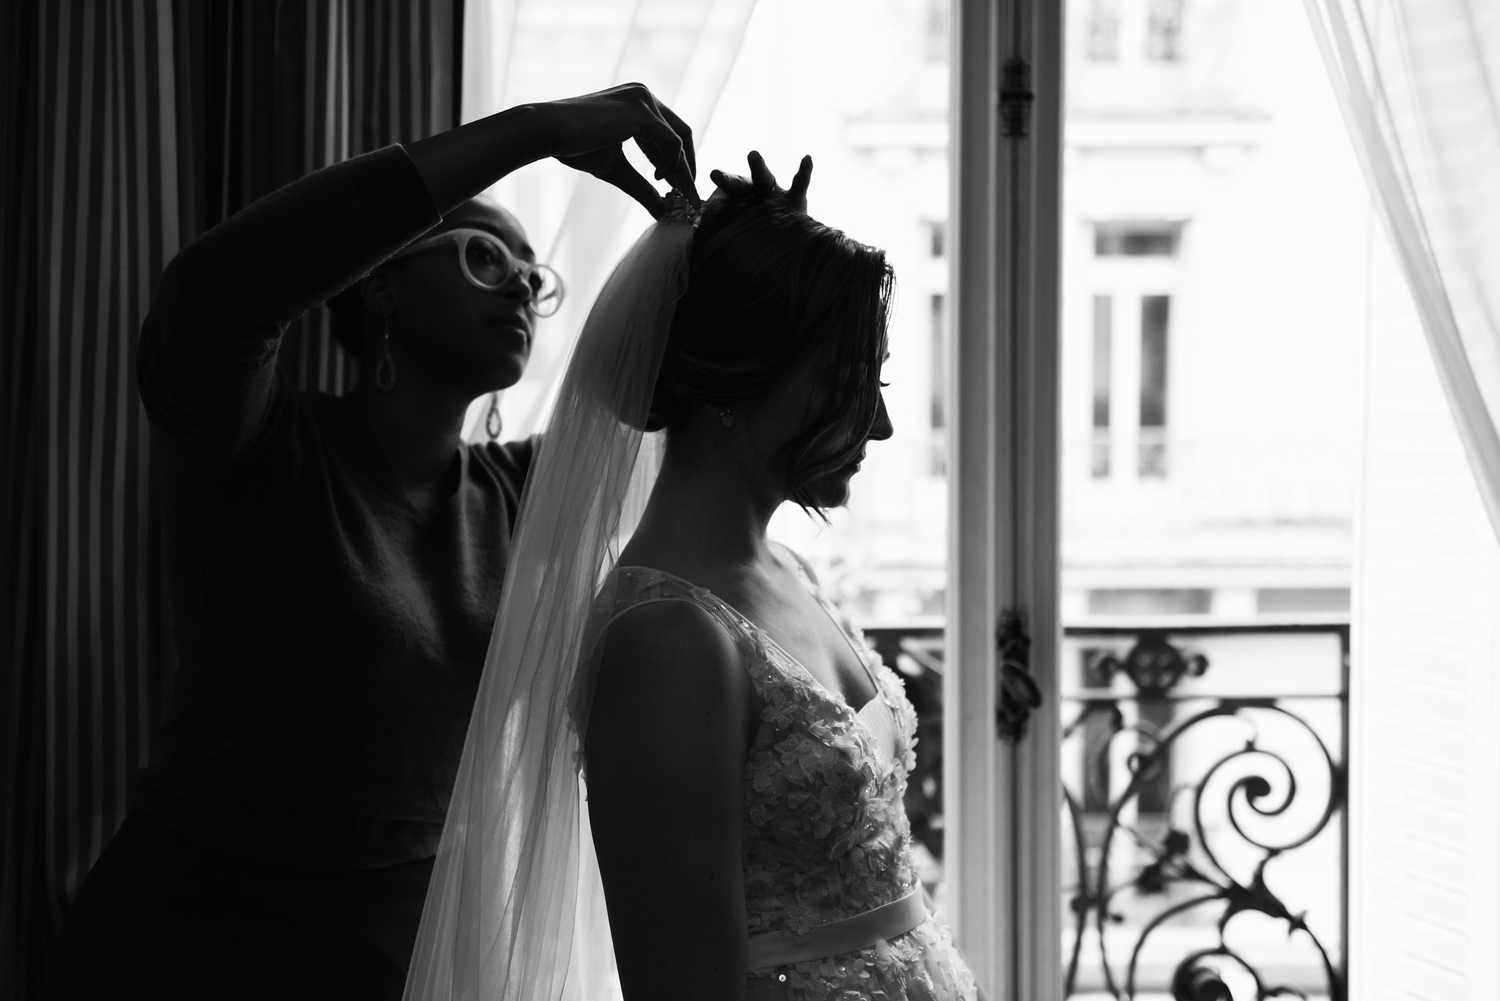 121-katie-mitchell-paris-europe-destination-elopement-wedding-photographer-france.jpg